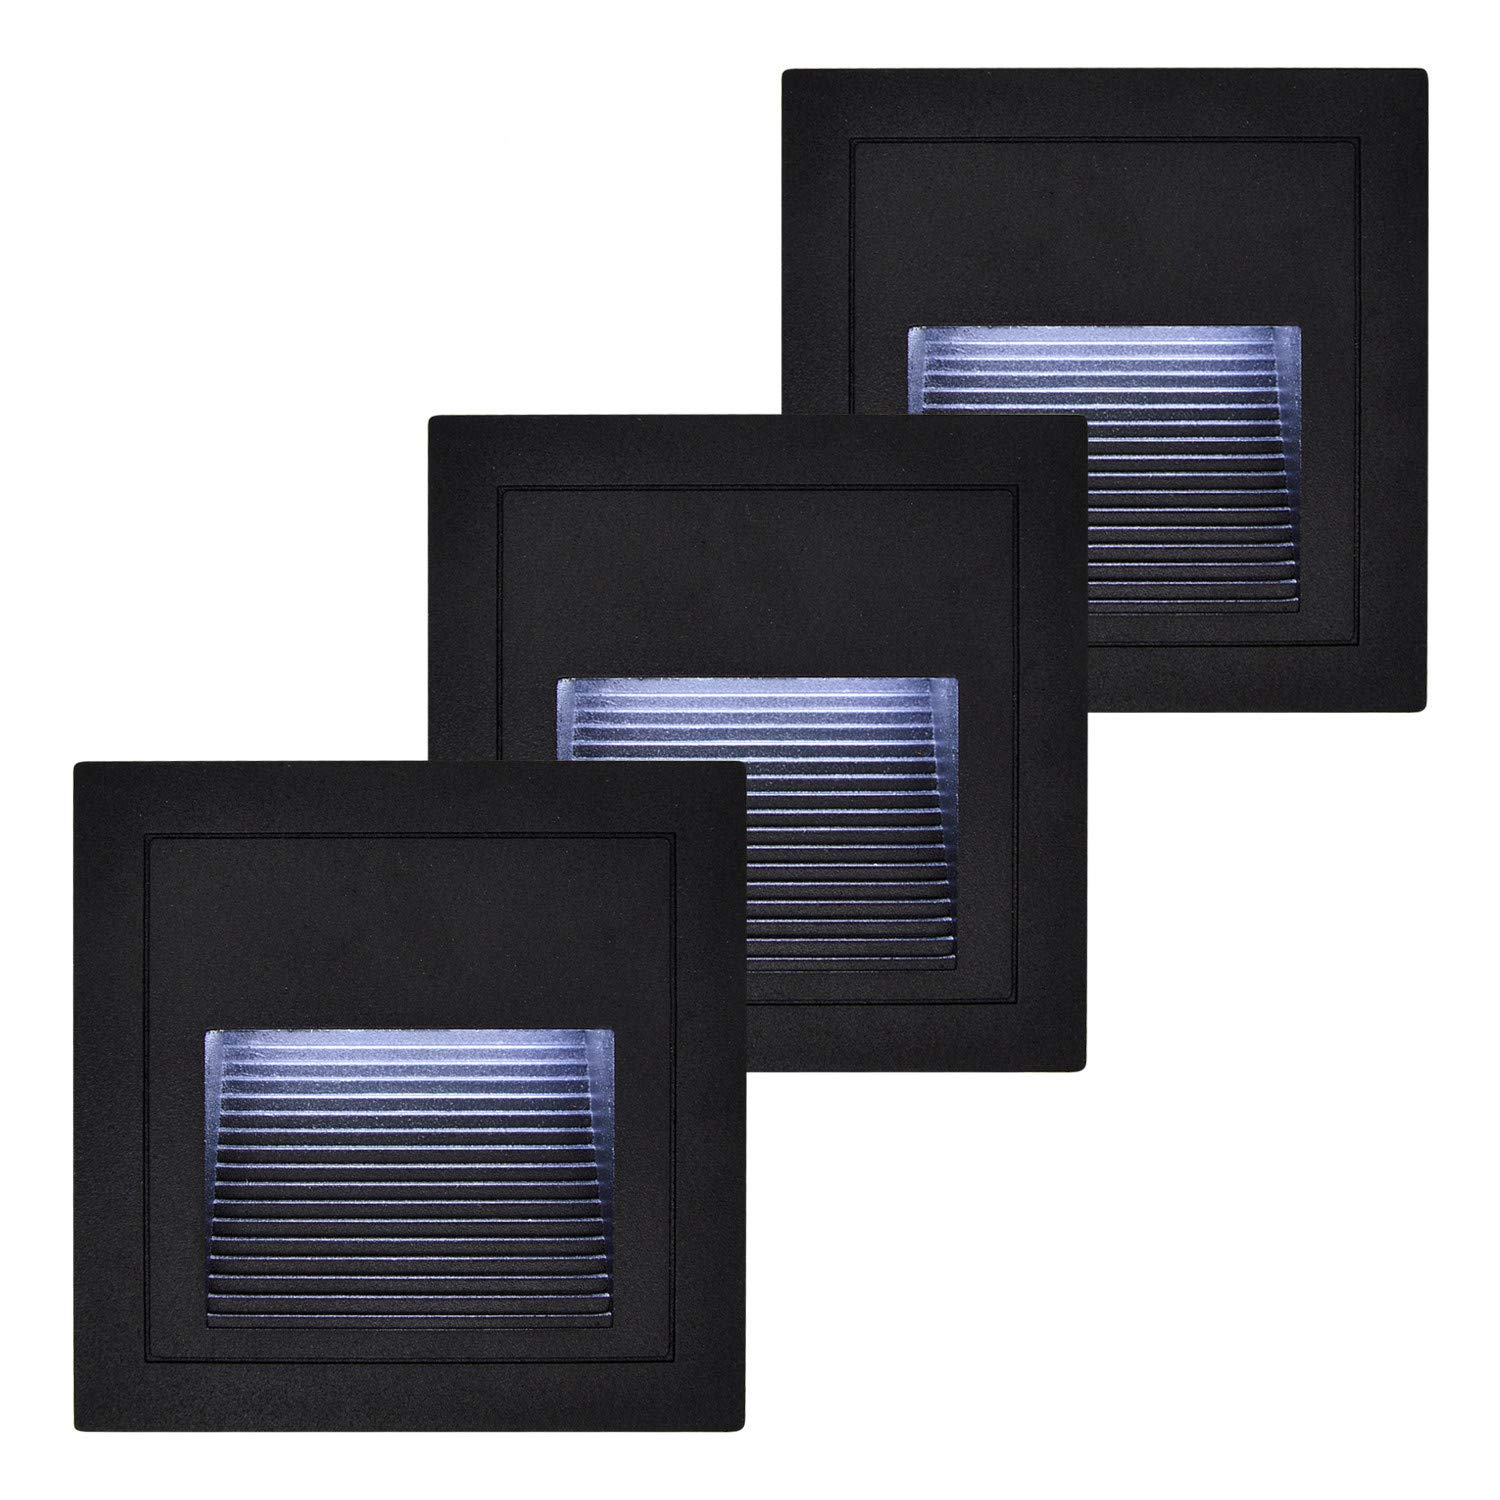 (3 Pack) Waterproof Step Lights, BOLXZHU 3W Indoor Outdoor Recessed Stair Light, 300LM LED Wall Sconces Lighting Night Light with 86 Type Boxes (Black+Cold White)